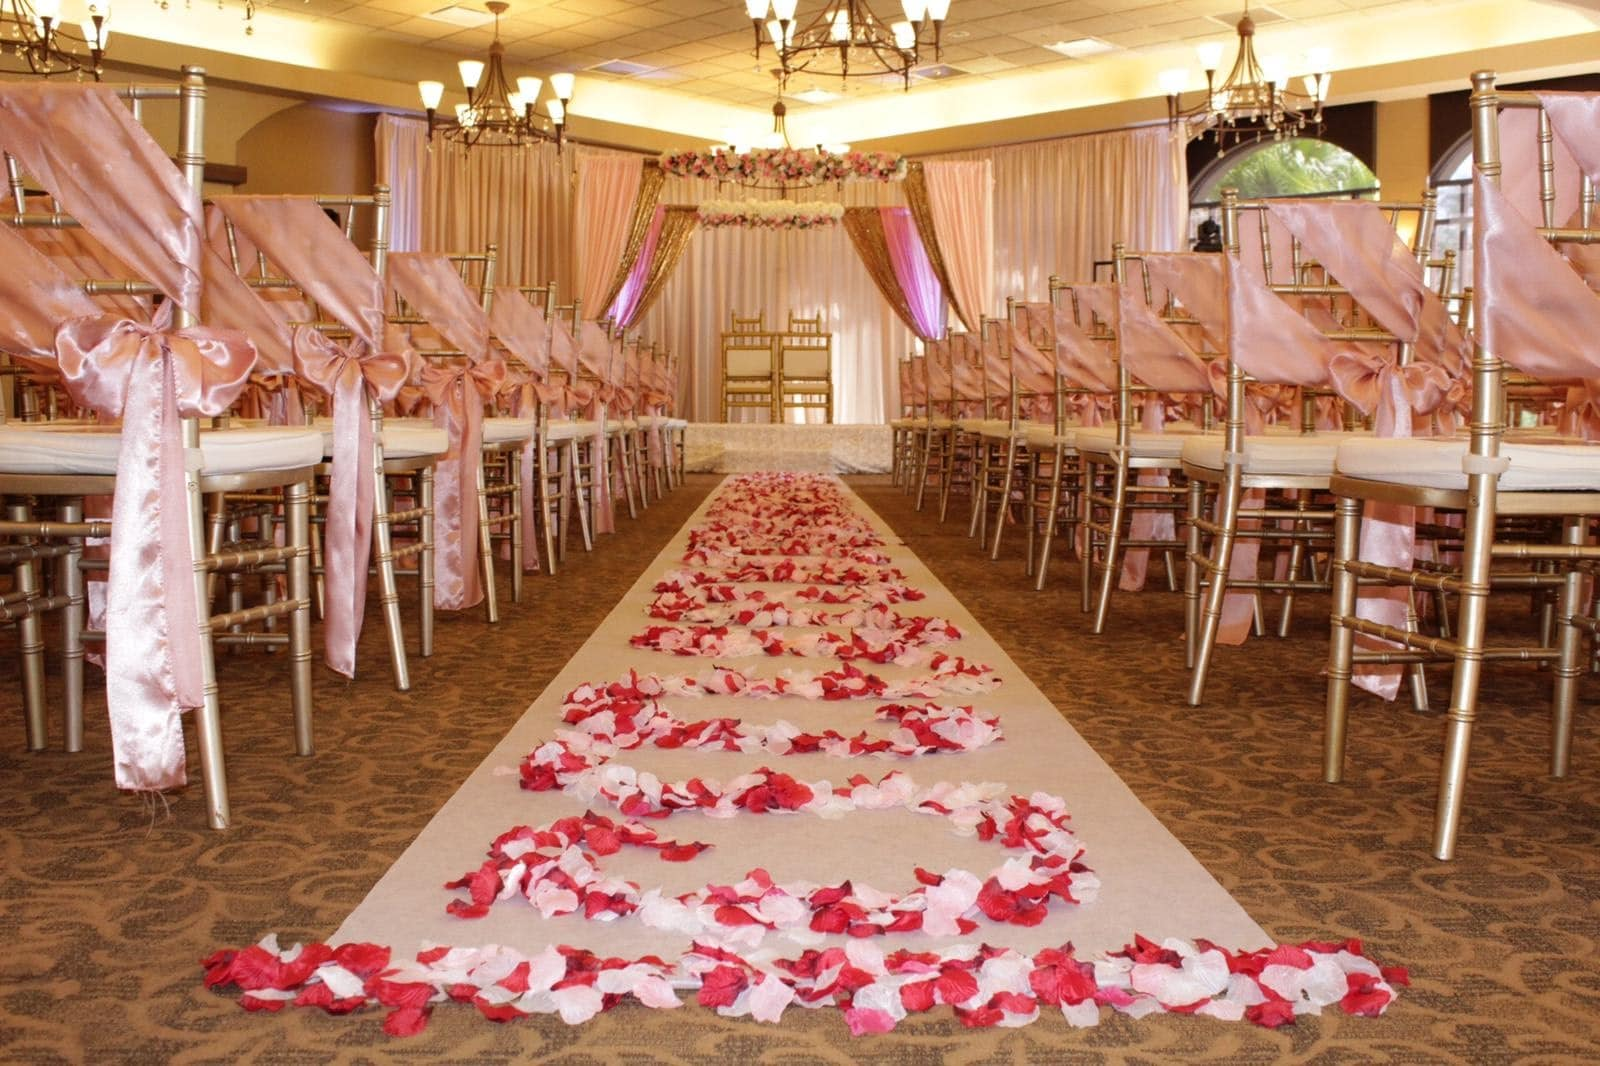 flower petals lining the aisle at the ceremony